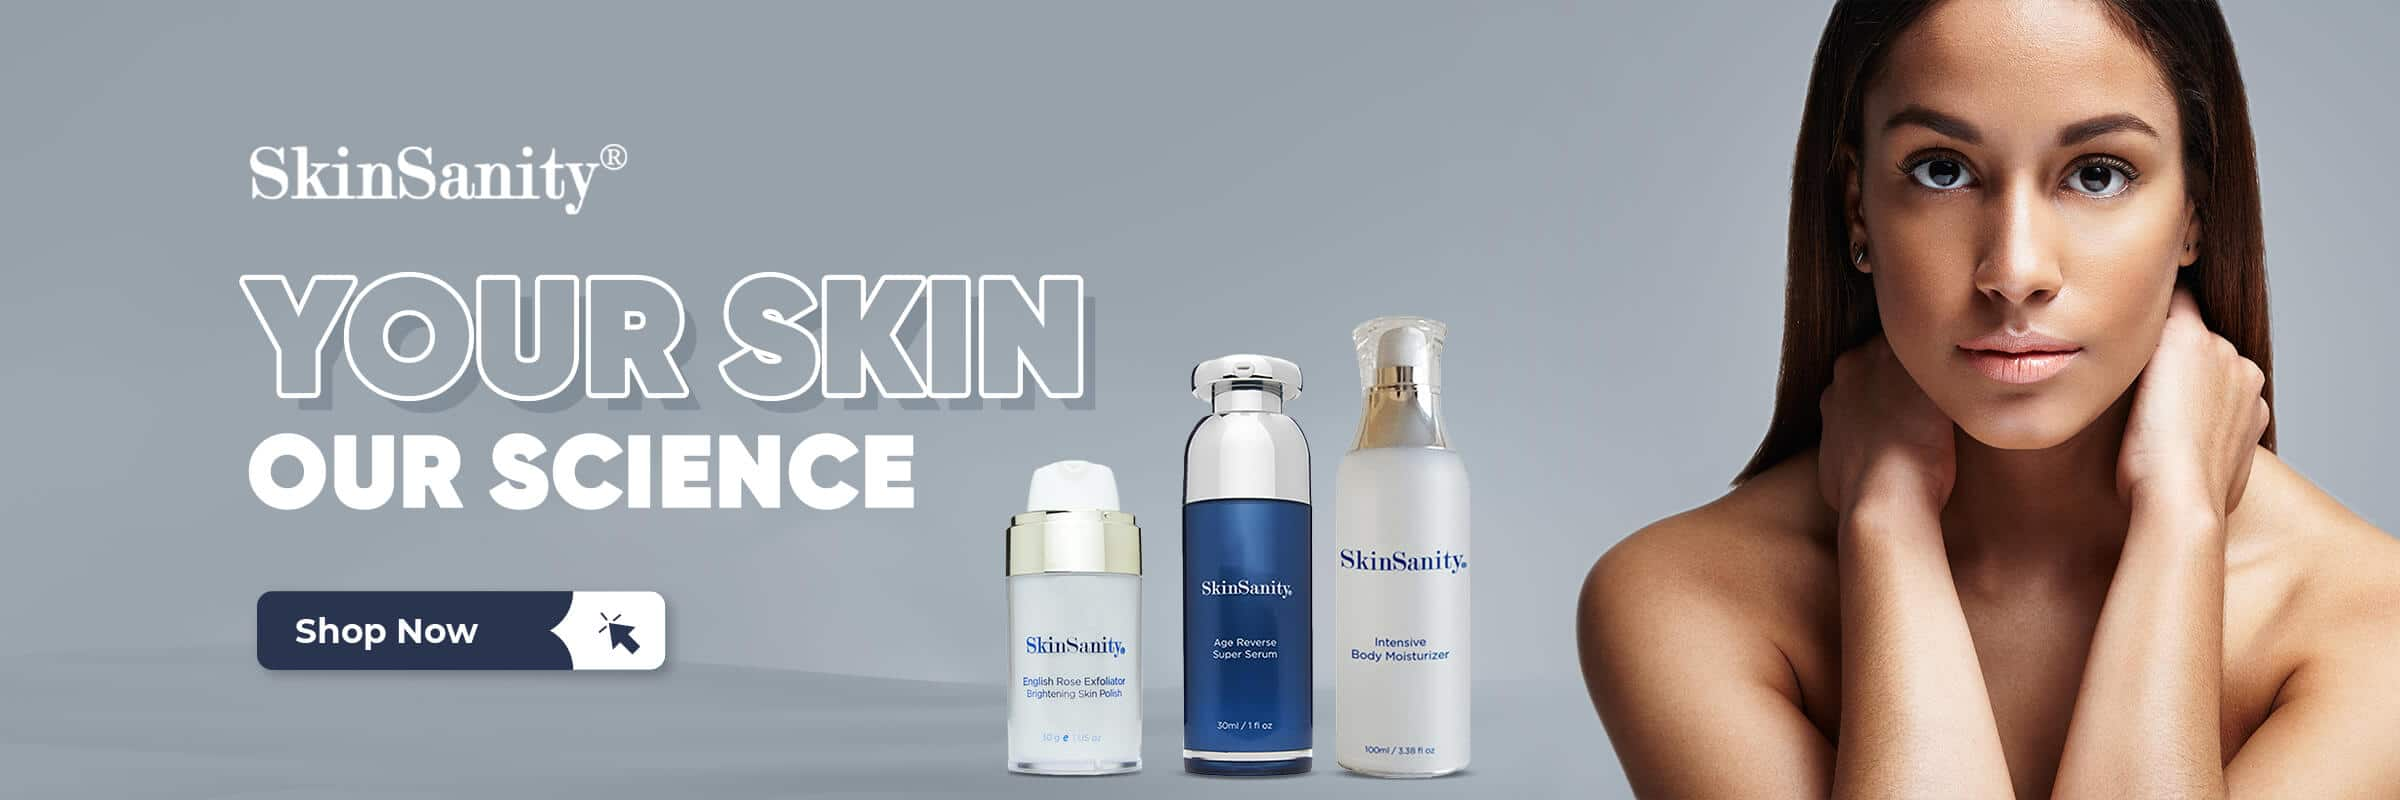 clean beauty products, clean beauty products online, skinsanity, your skin our science